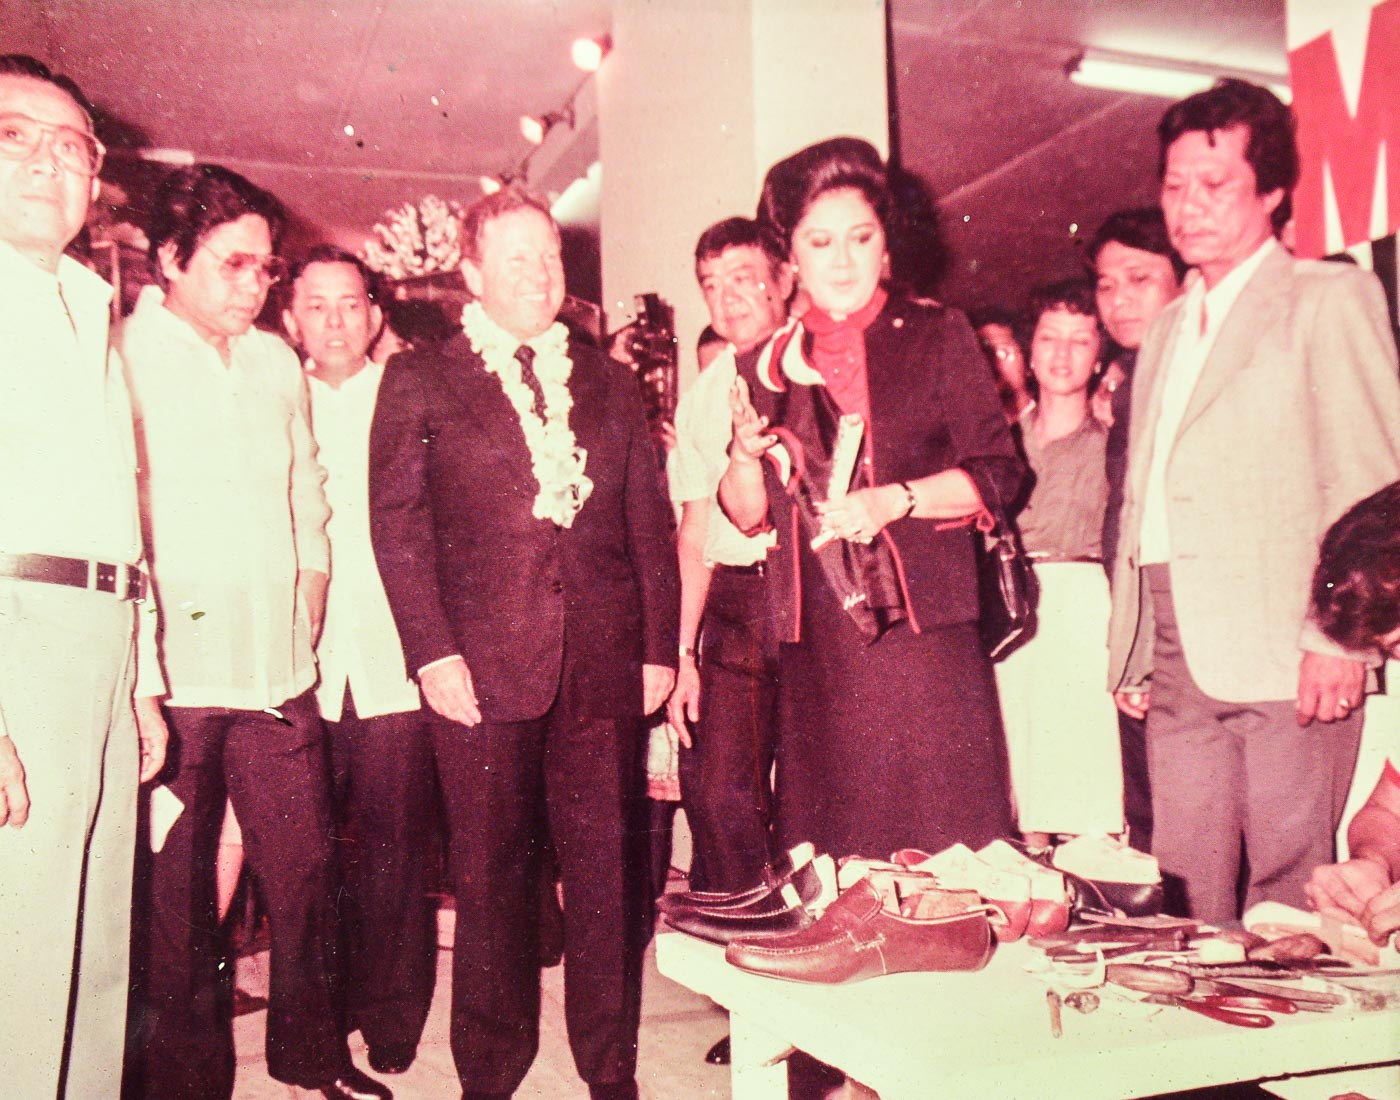 SHOE LOVER. One of the photos featured in the Marikina Shoe Museum shows Imelda Marcos watching a shoemaker. Photo from the Marikina Shoe Museum